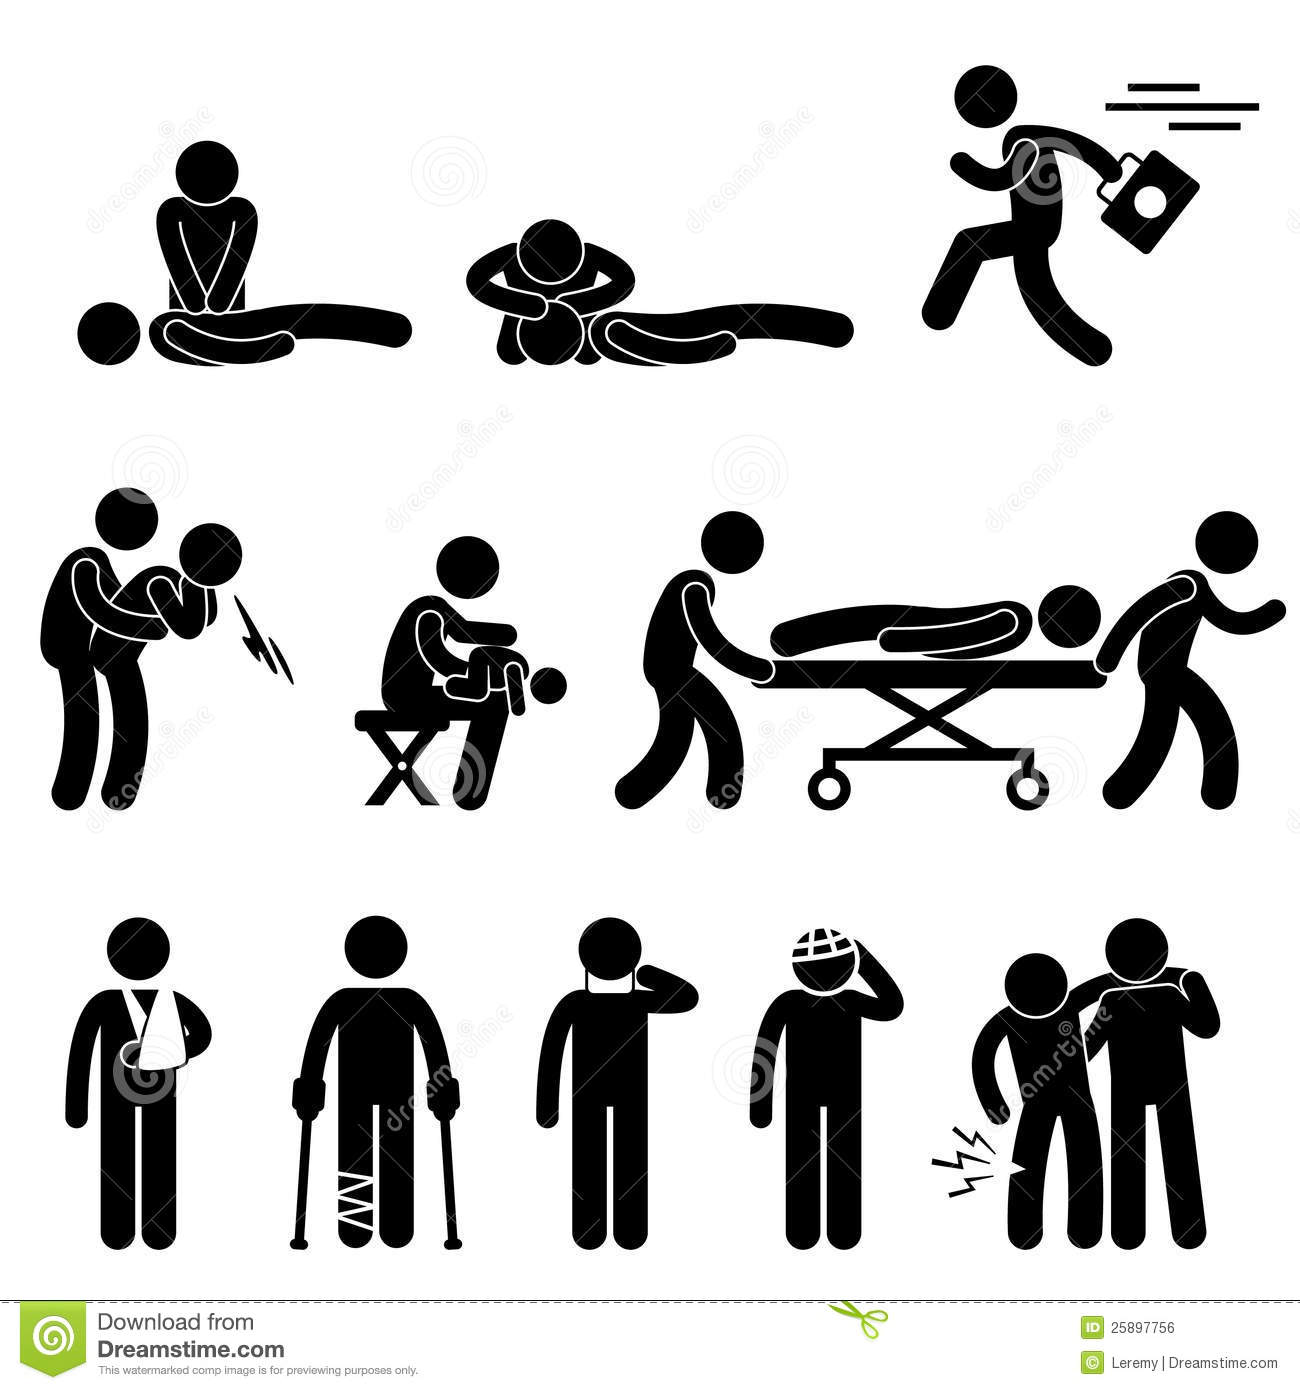 Royalty Free Stock Image First Aid Rescue Emergency Help Cpr Pictogram Image25897756 on leremy